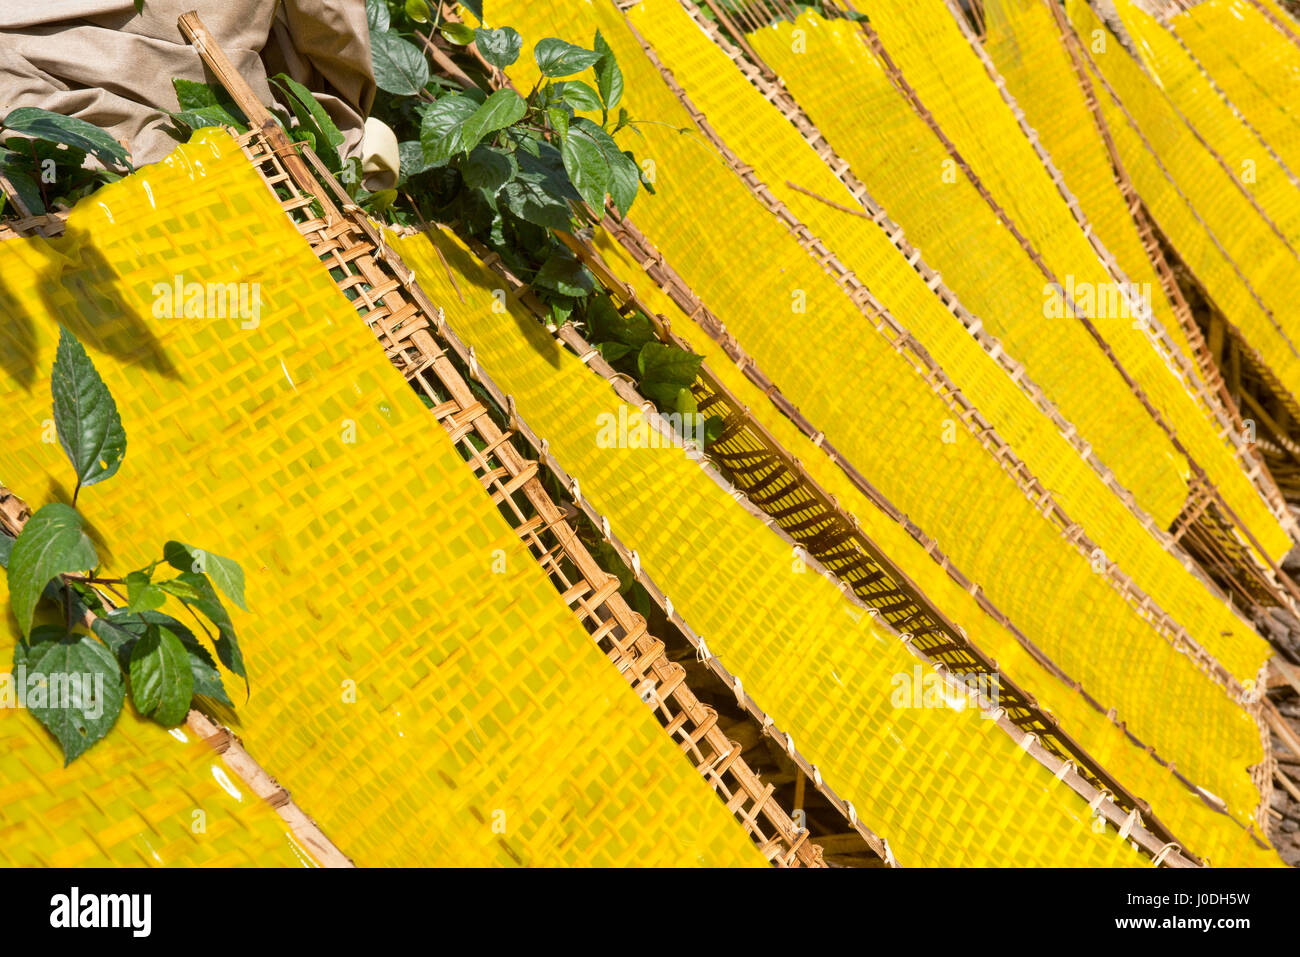 Horizontal close up of traditional yellow rice noodles in sheet form drying out in the sunshine in Vietnam. - Stock Image